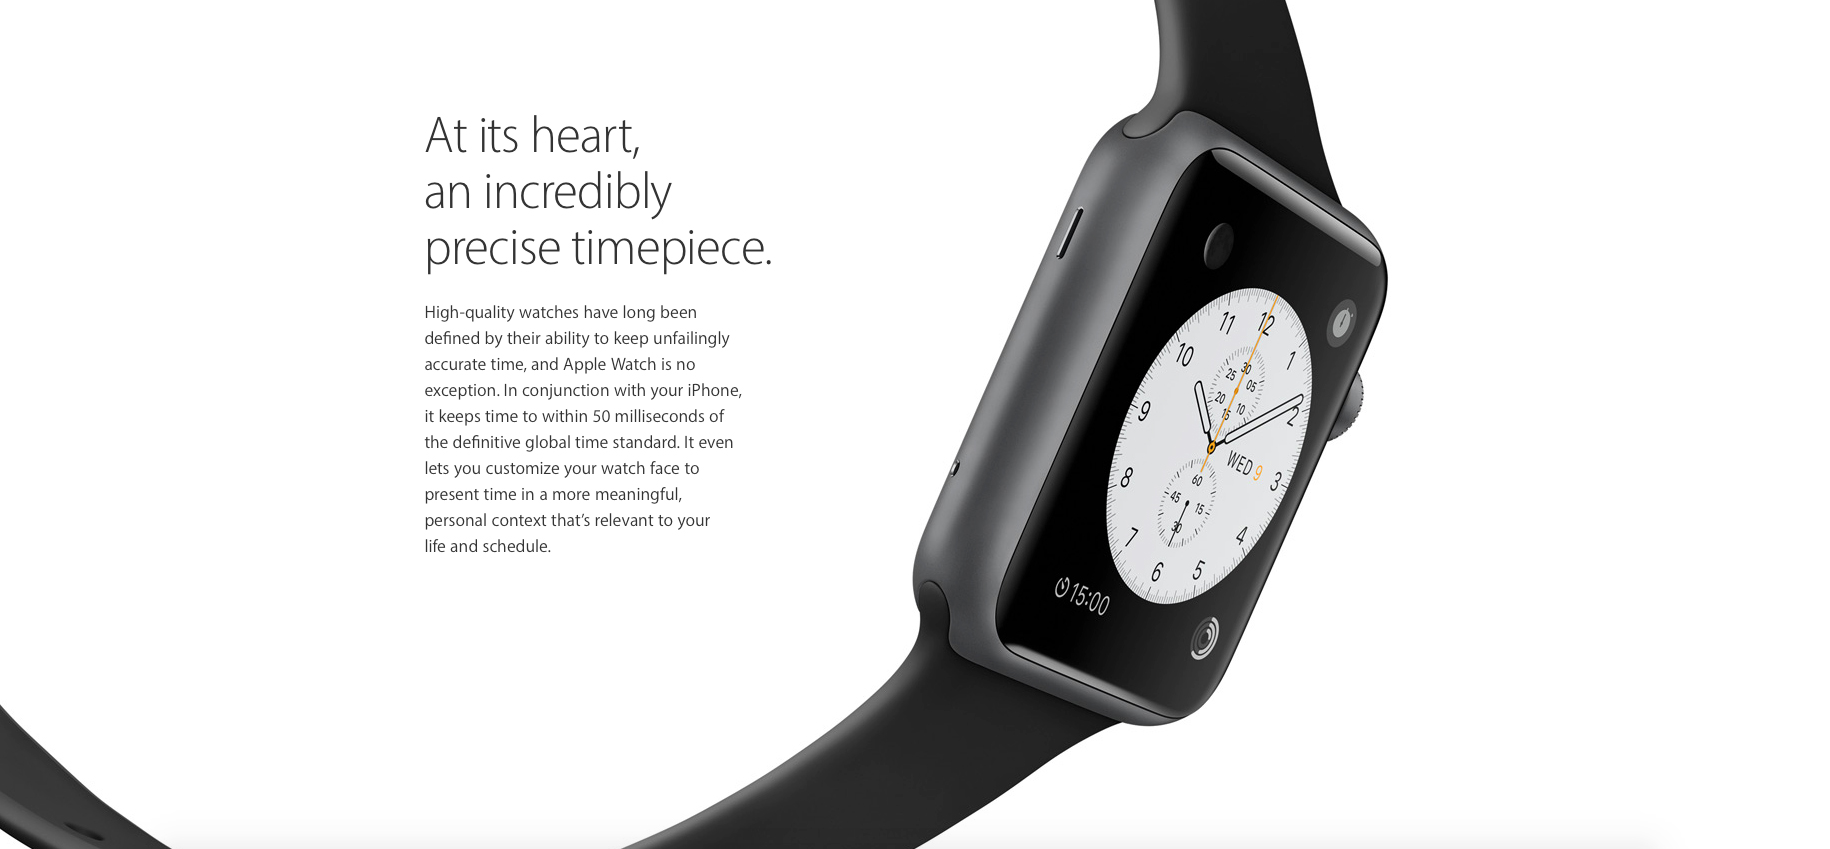 Ring in the new year with the exceptionally accurate Apple Watch